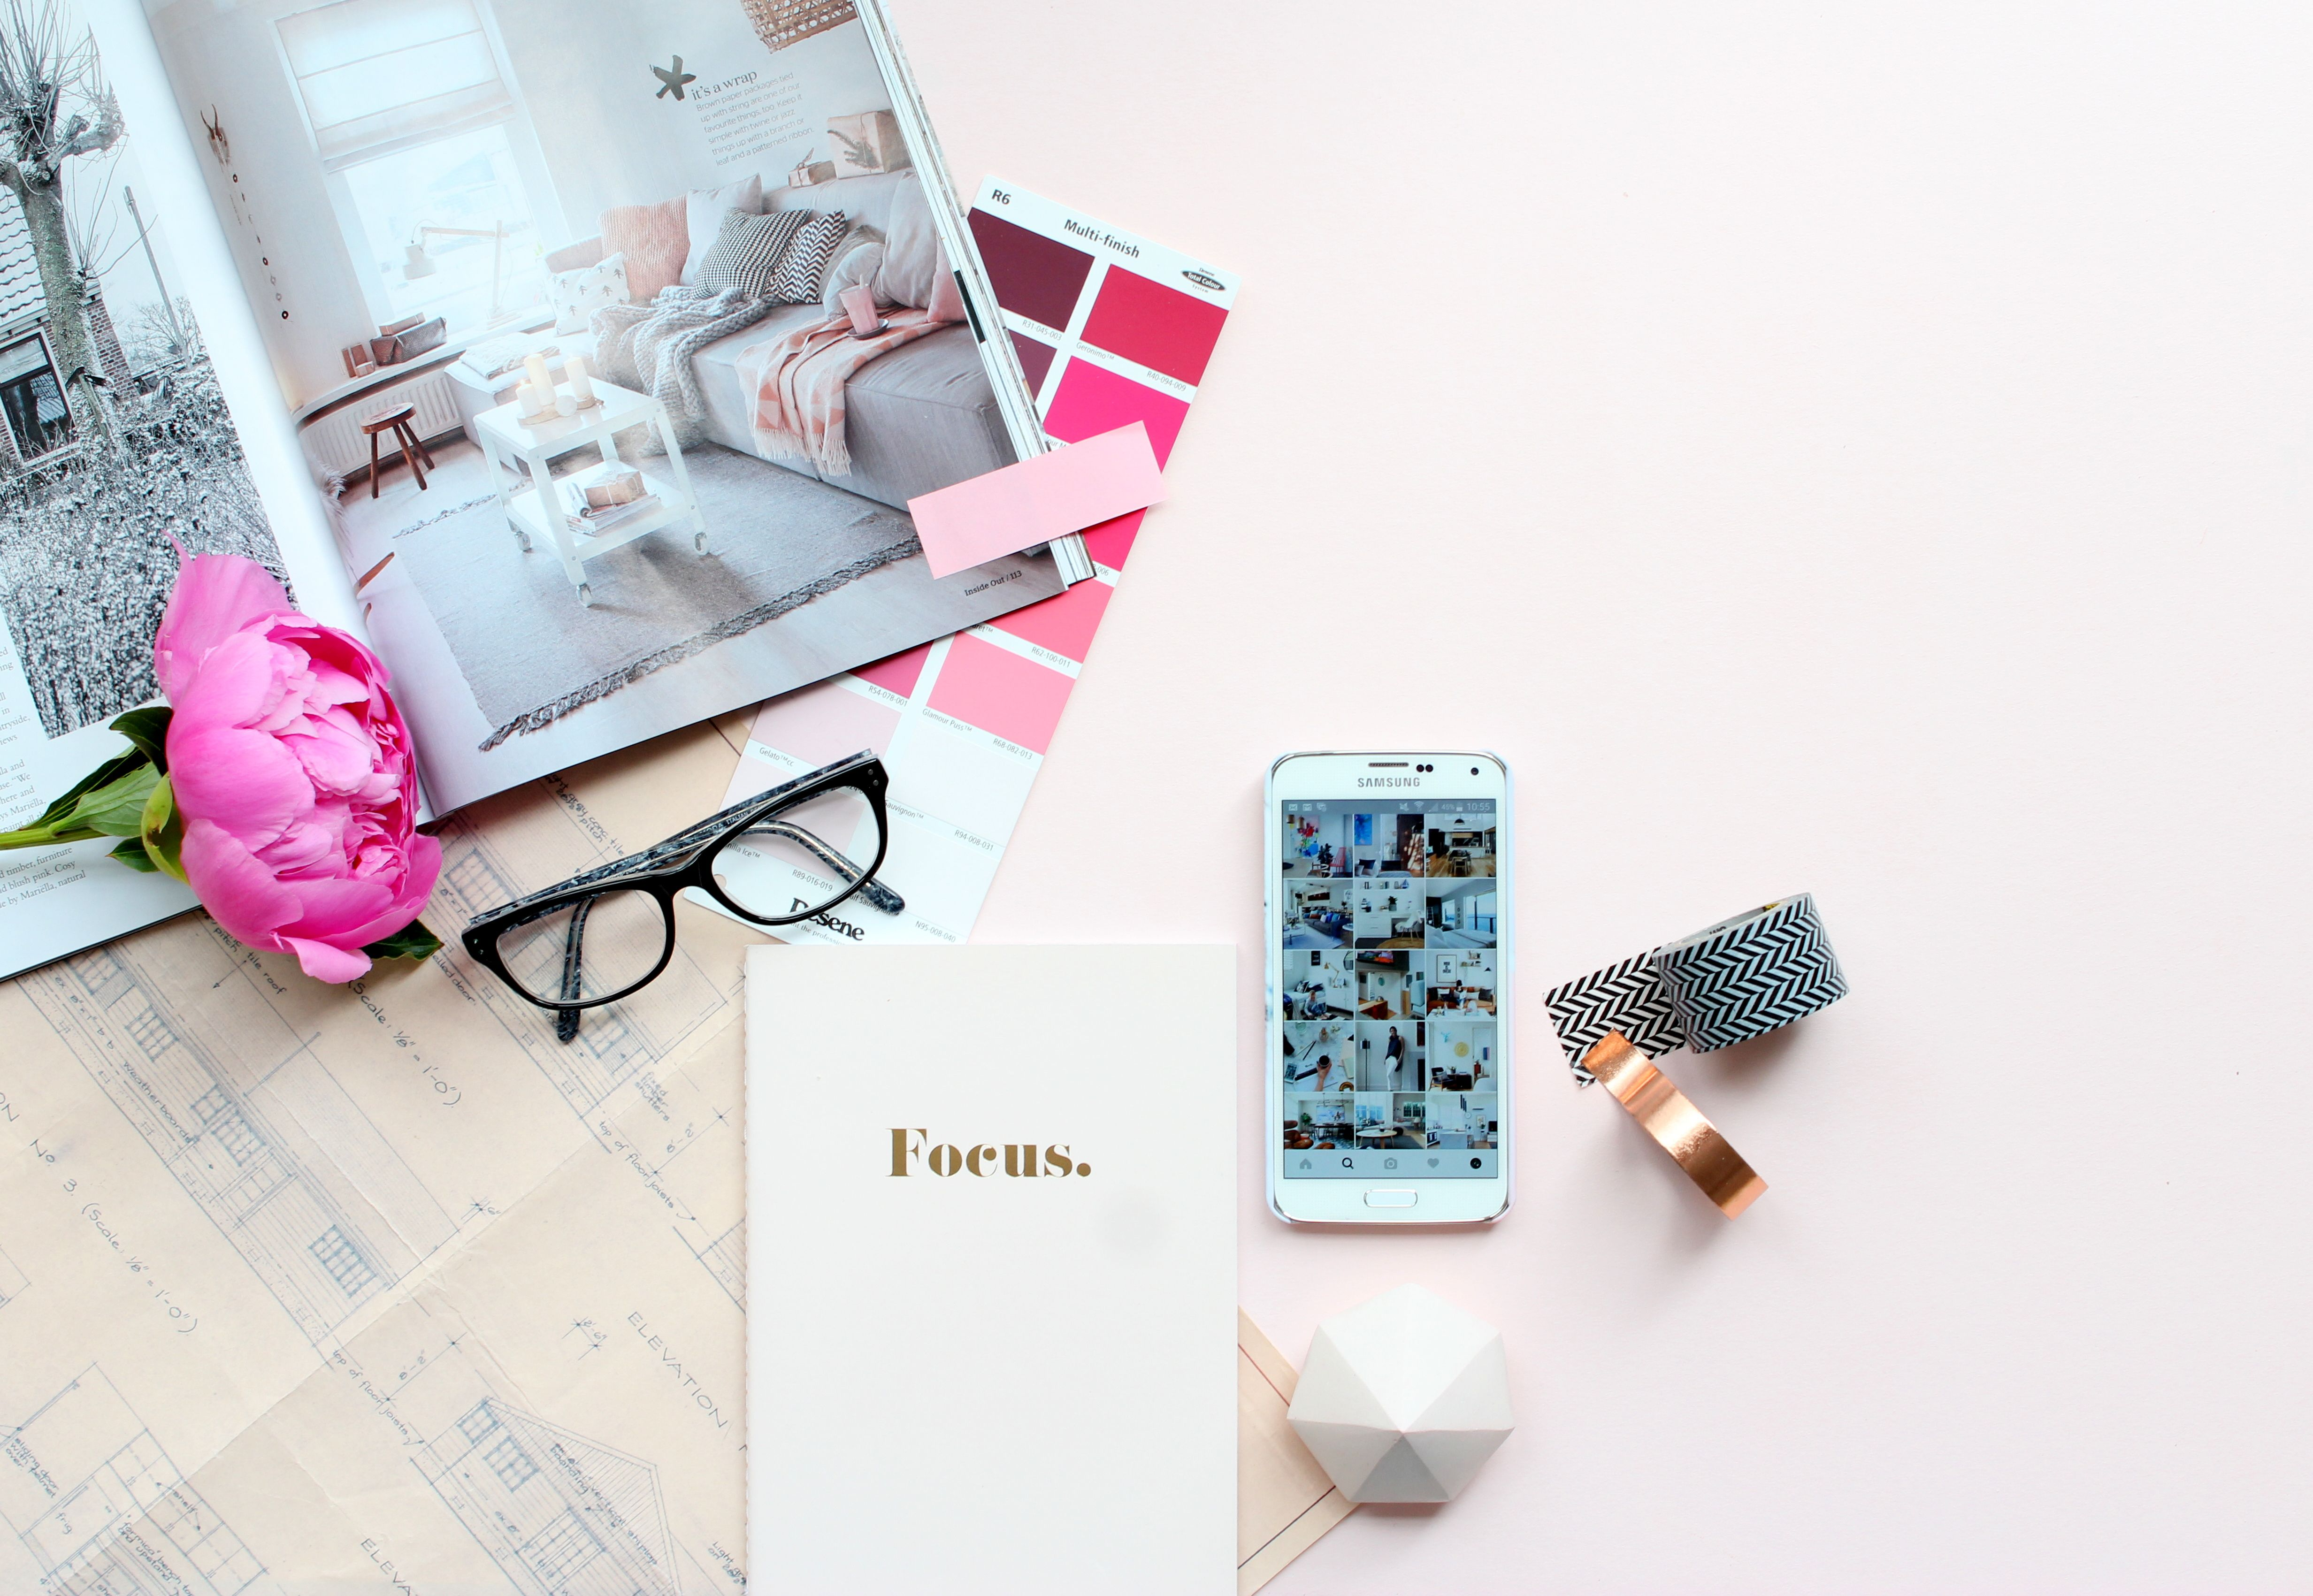 Did You Know That We Also Offer A Short Course On Social Media For Interior Designers